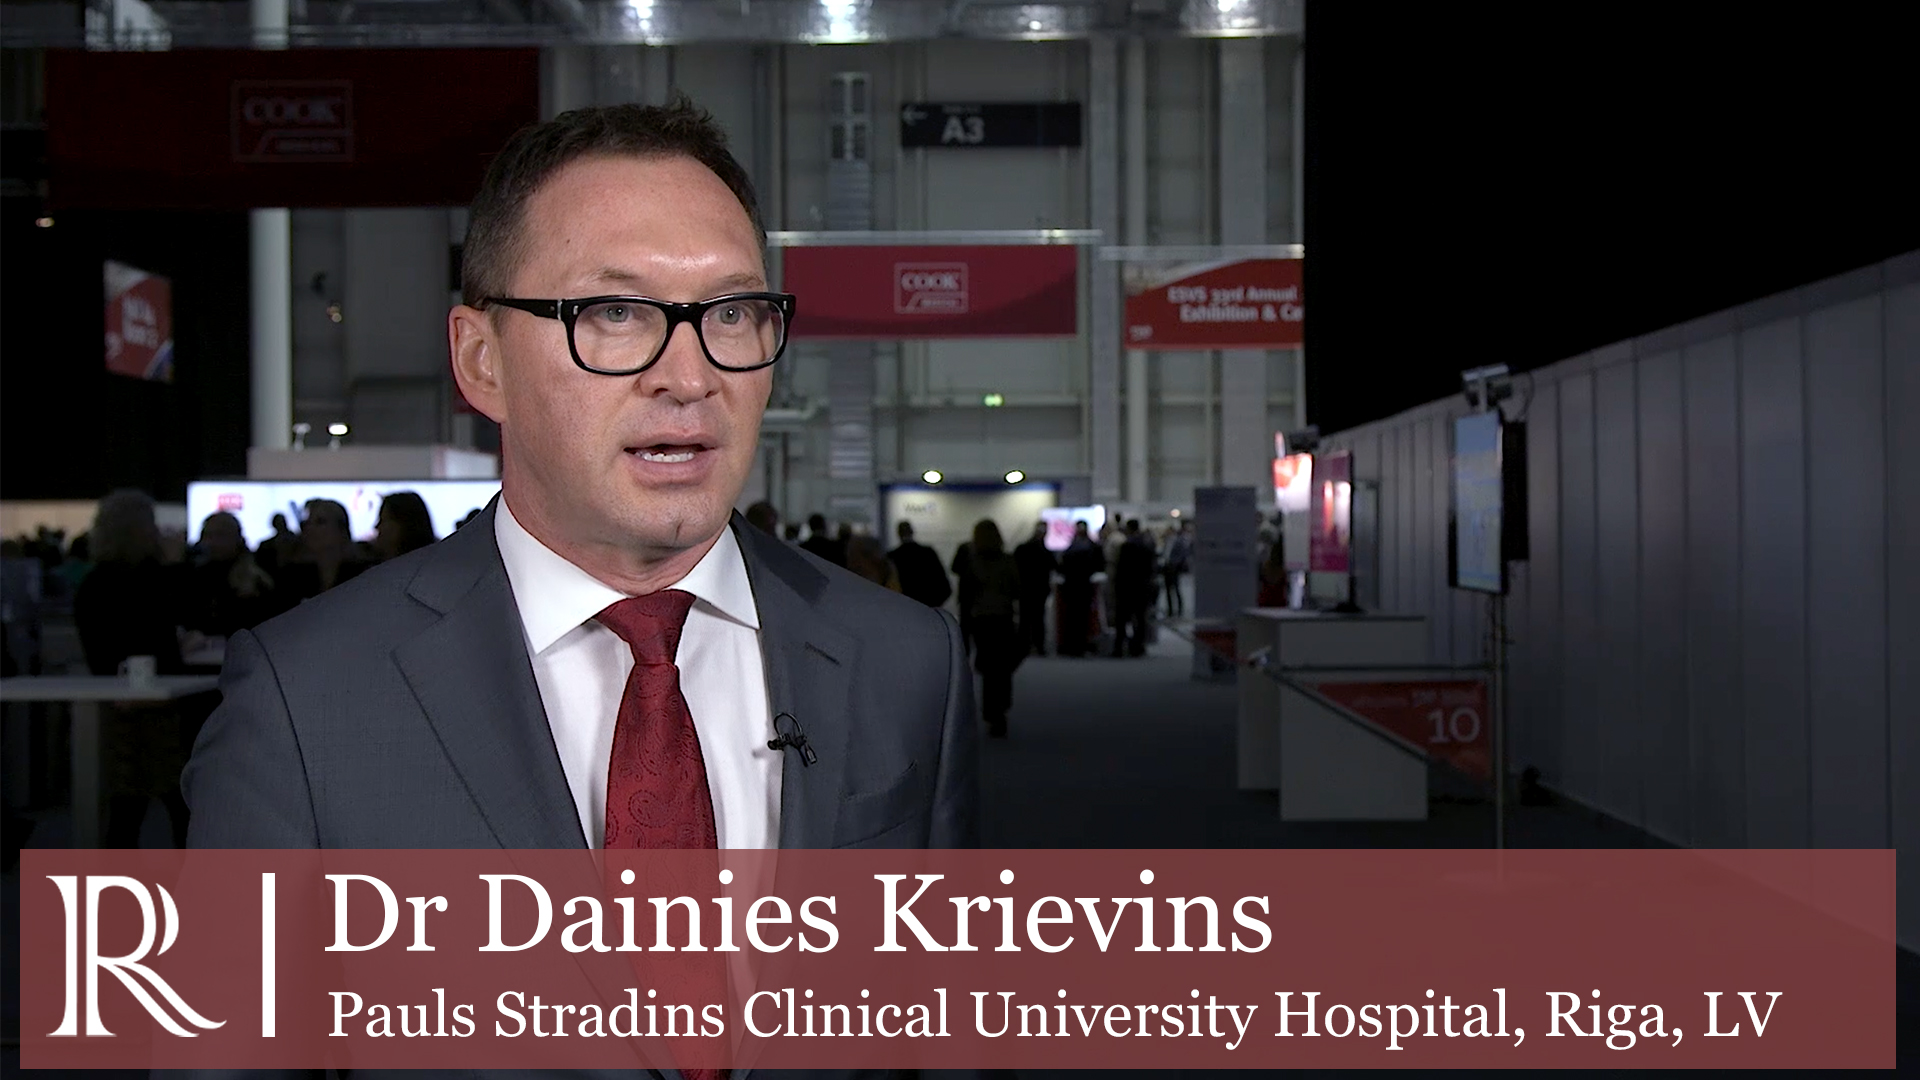 ESVS 2019: Pre-operative testing for silent coronary ischemia using coronary CT angiography - Dr Dainis Krievins